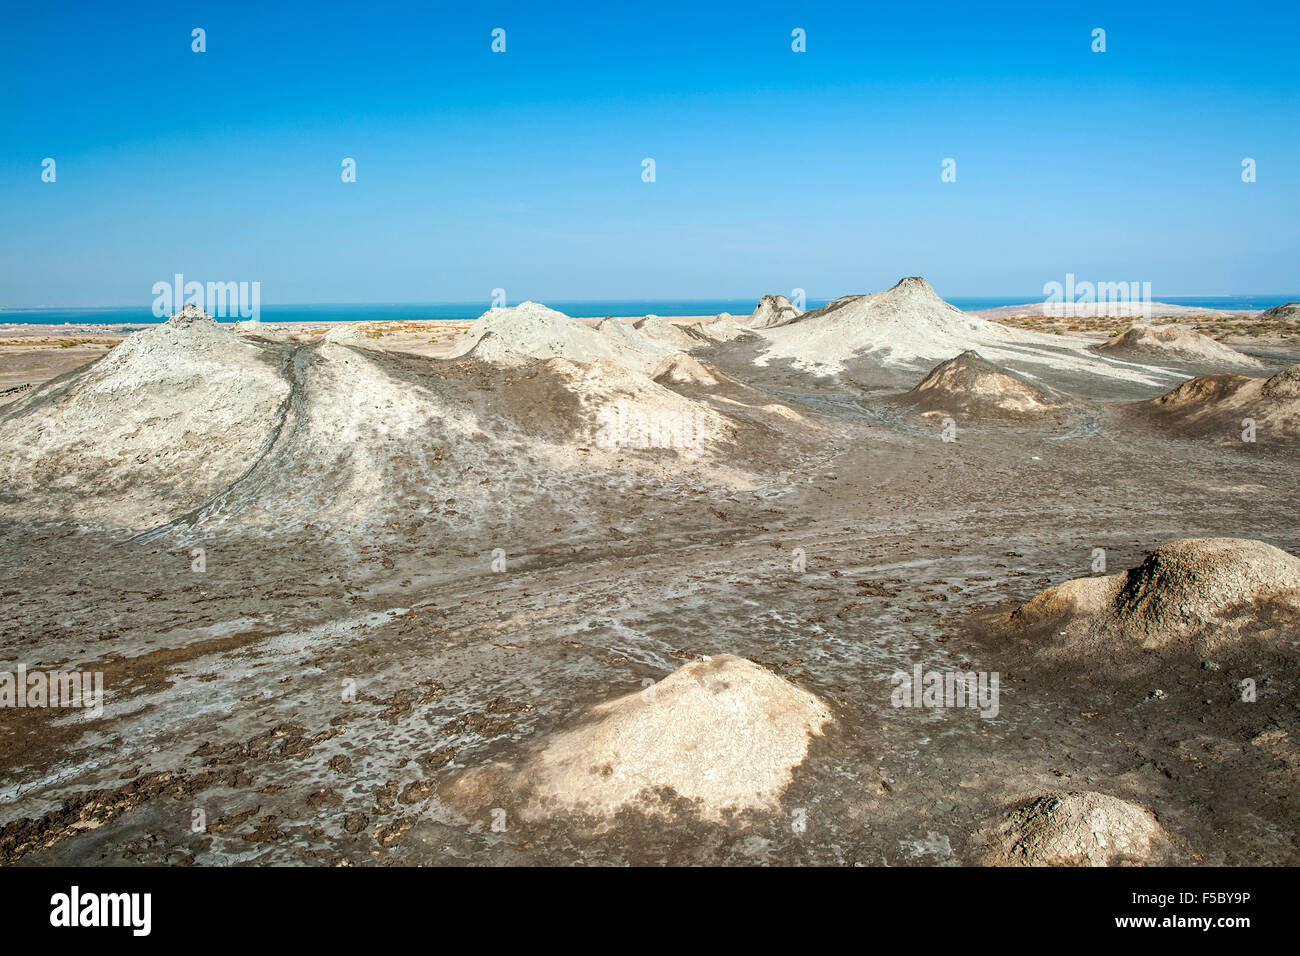 Mud volcanoes in Gobustan National Park in Azerbaijan. - Stock Image